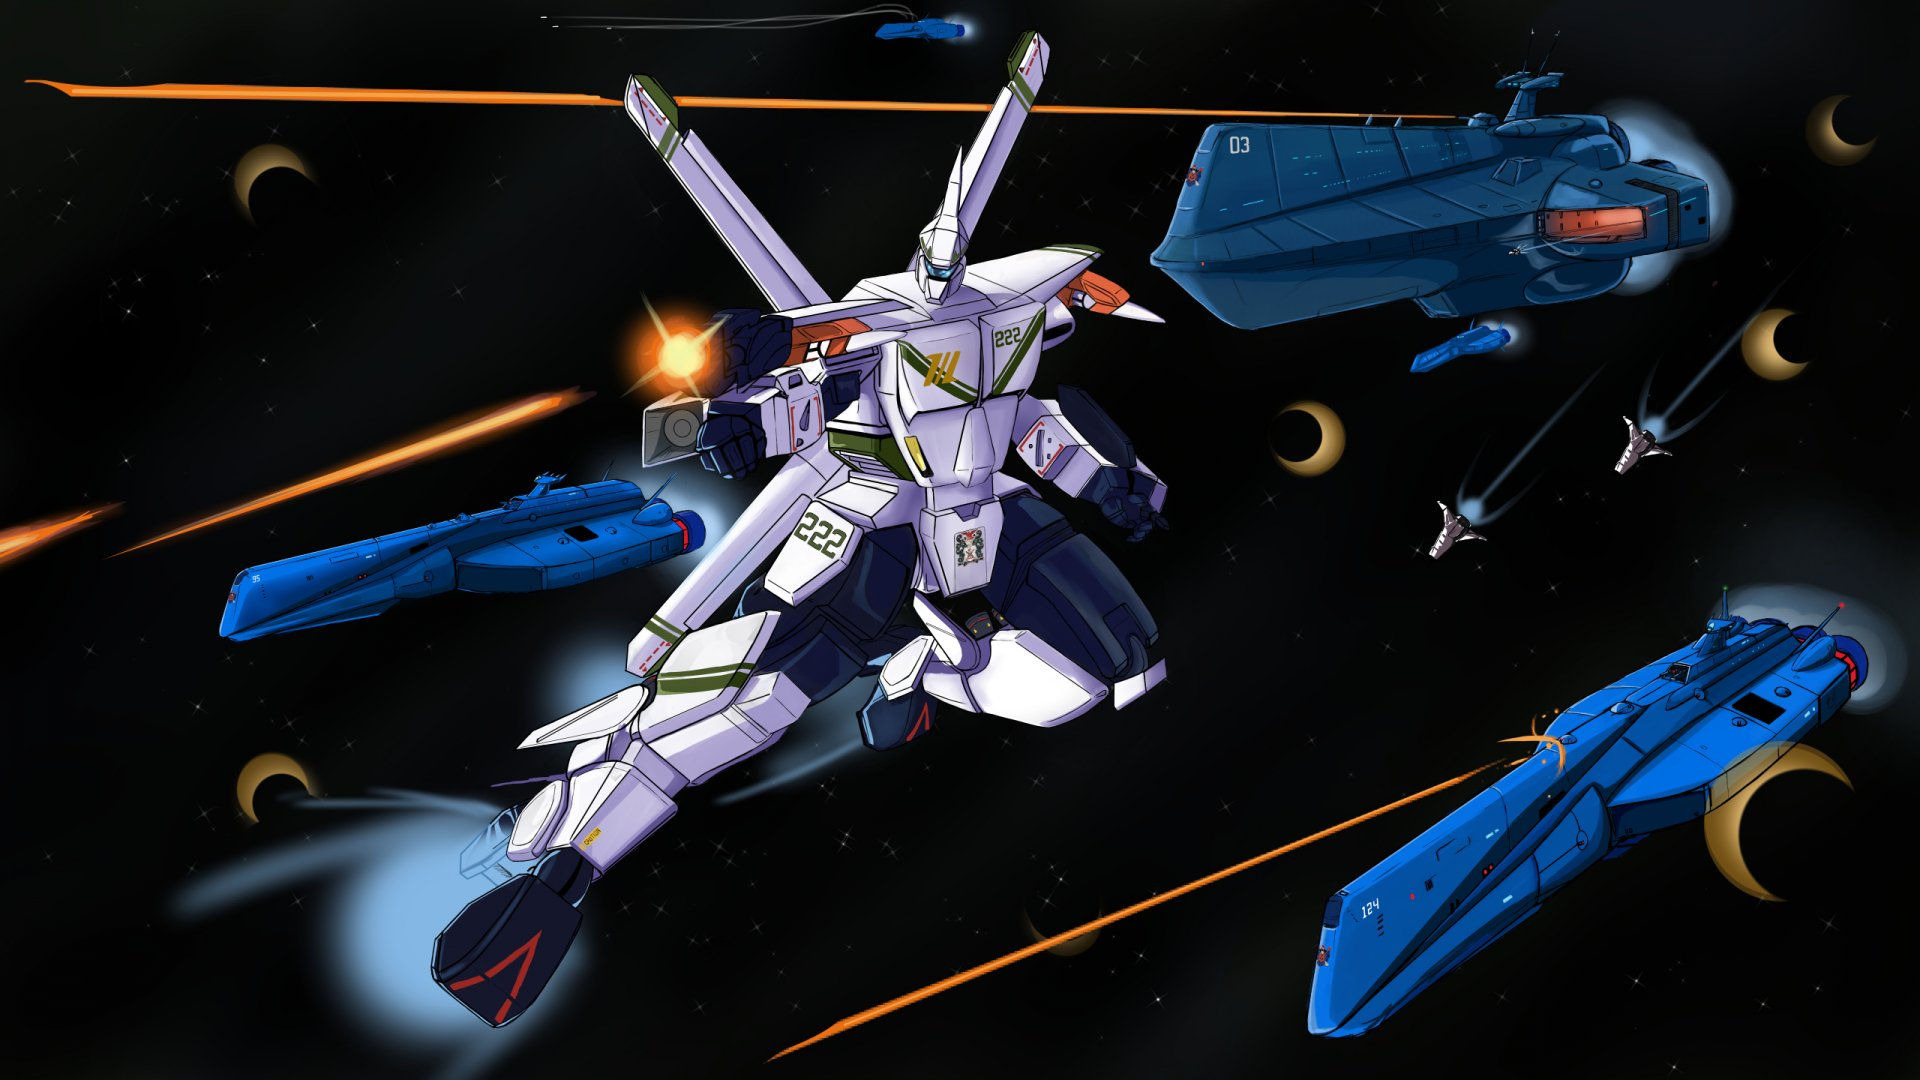 robotech___first_meeting_by_leelf-dav7sus.jpg